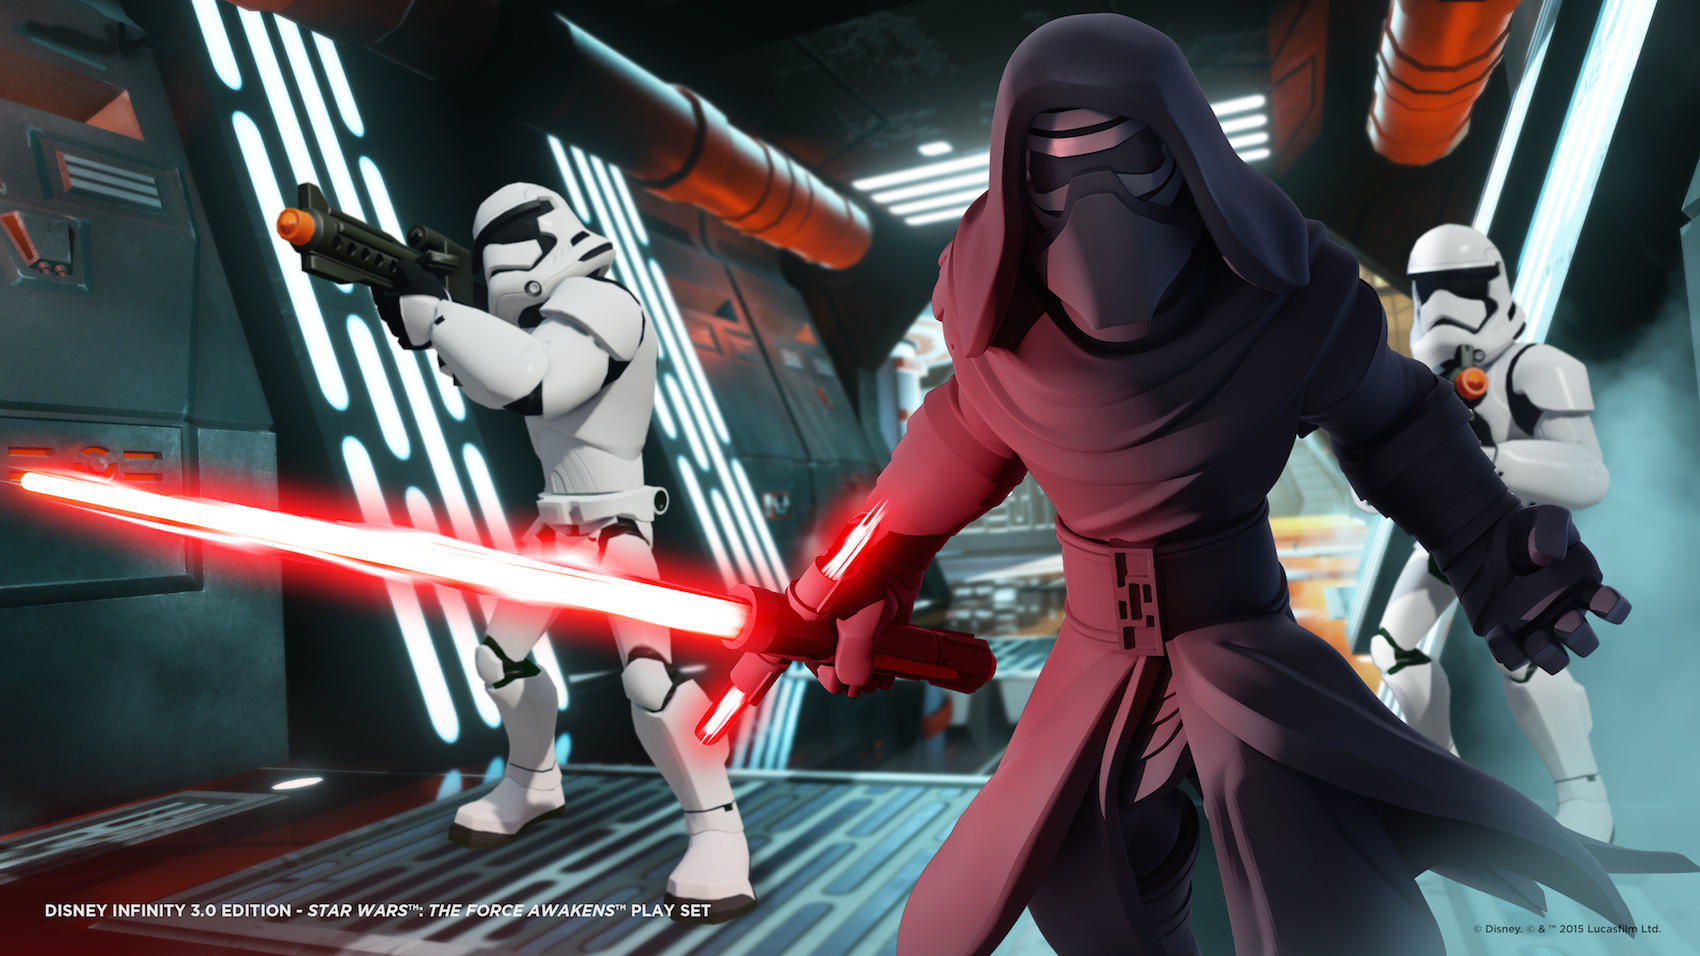 Kylo Ren and the First Order stormtroopers.